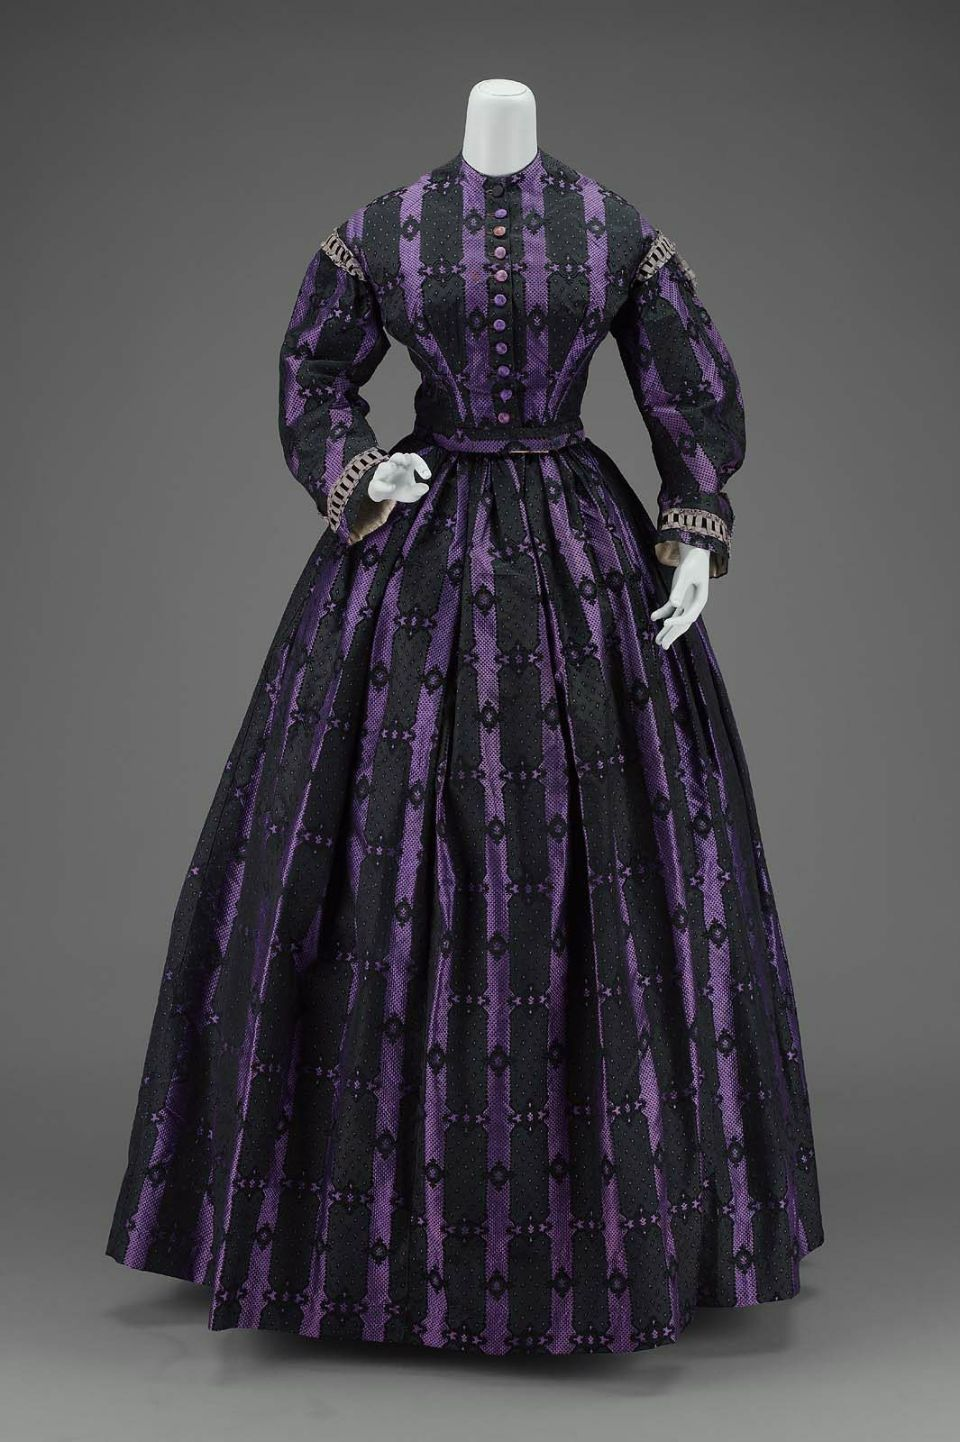 1860 American Dress at the Museum of Fine Arts, Boston